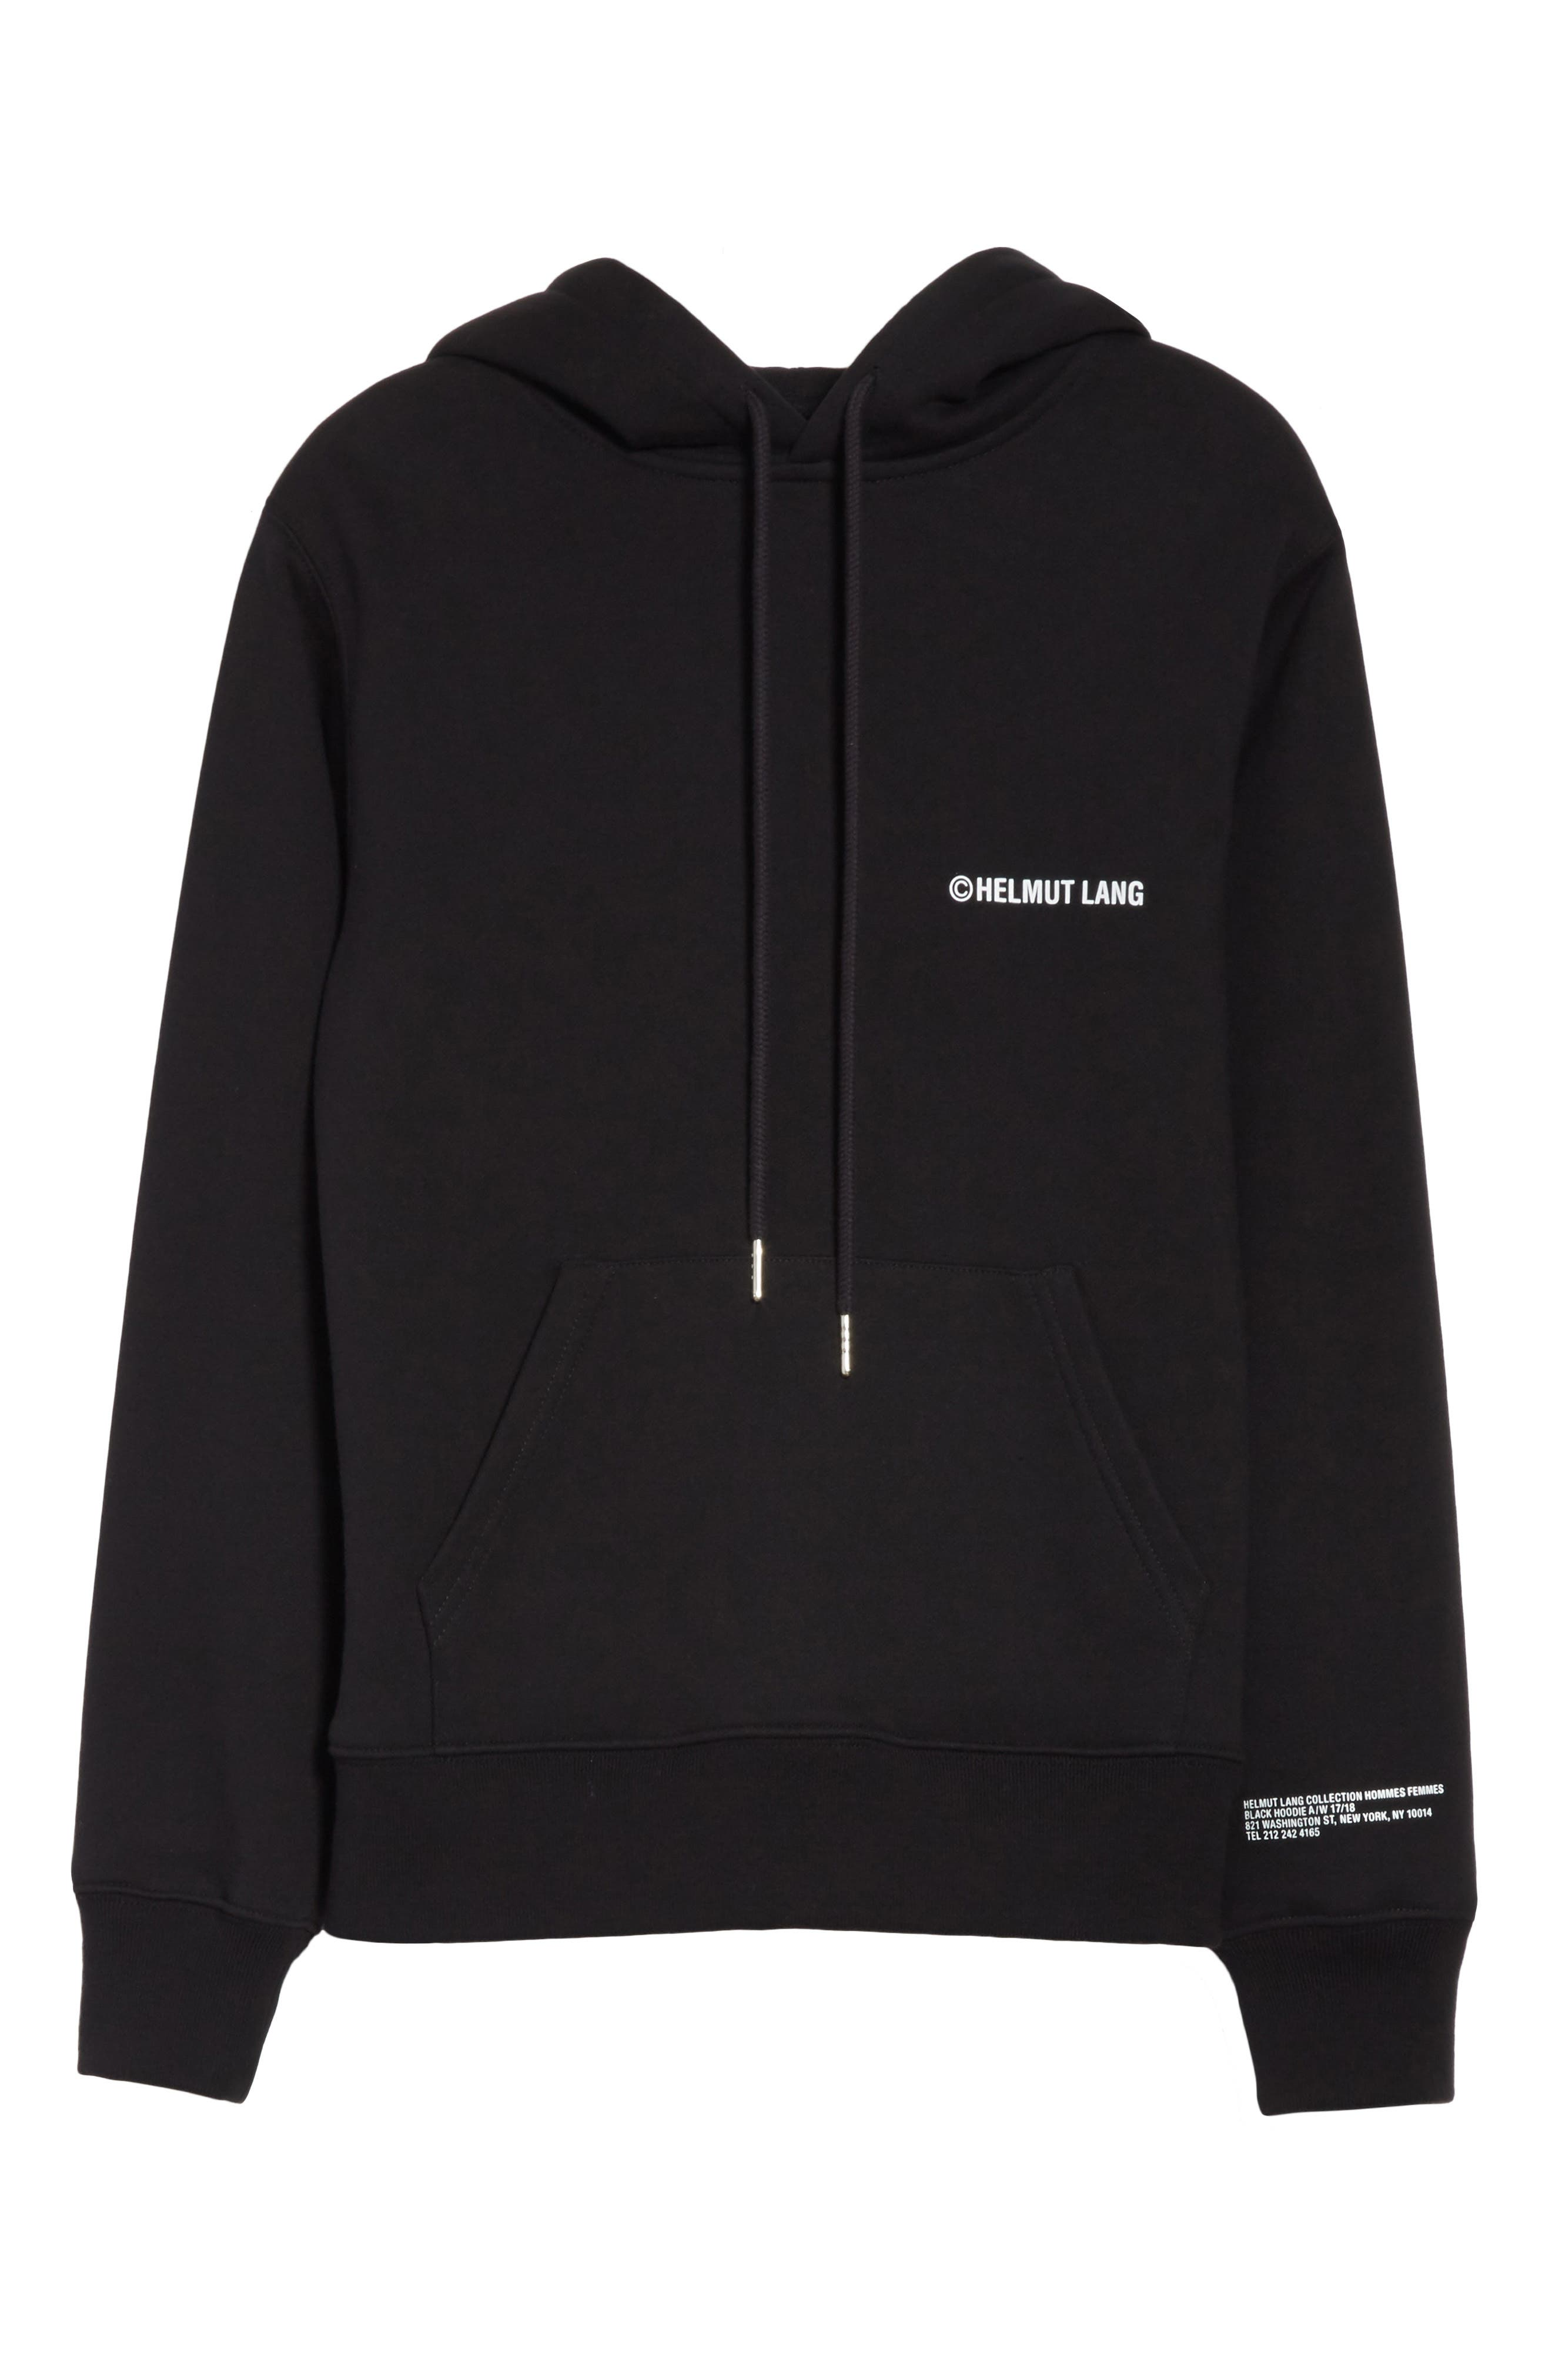 Copyright Cotton Hoodie,                             Alternate thumbnail 6, color,                             001